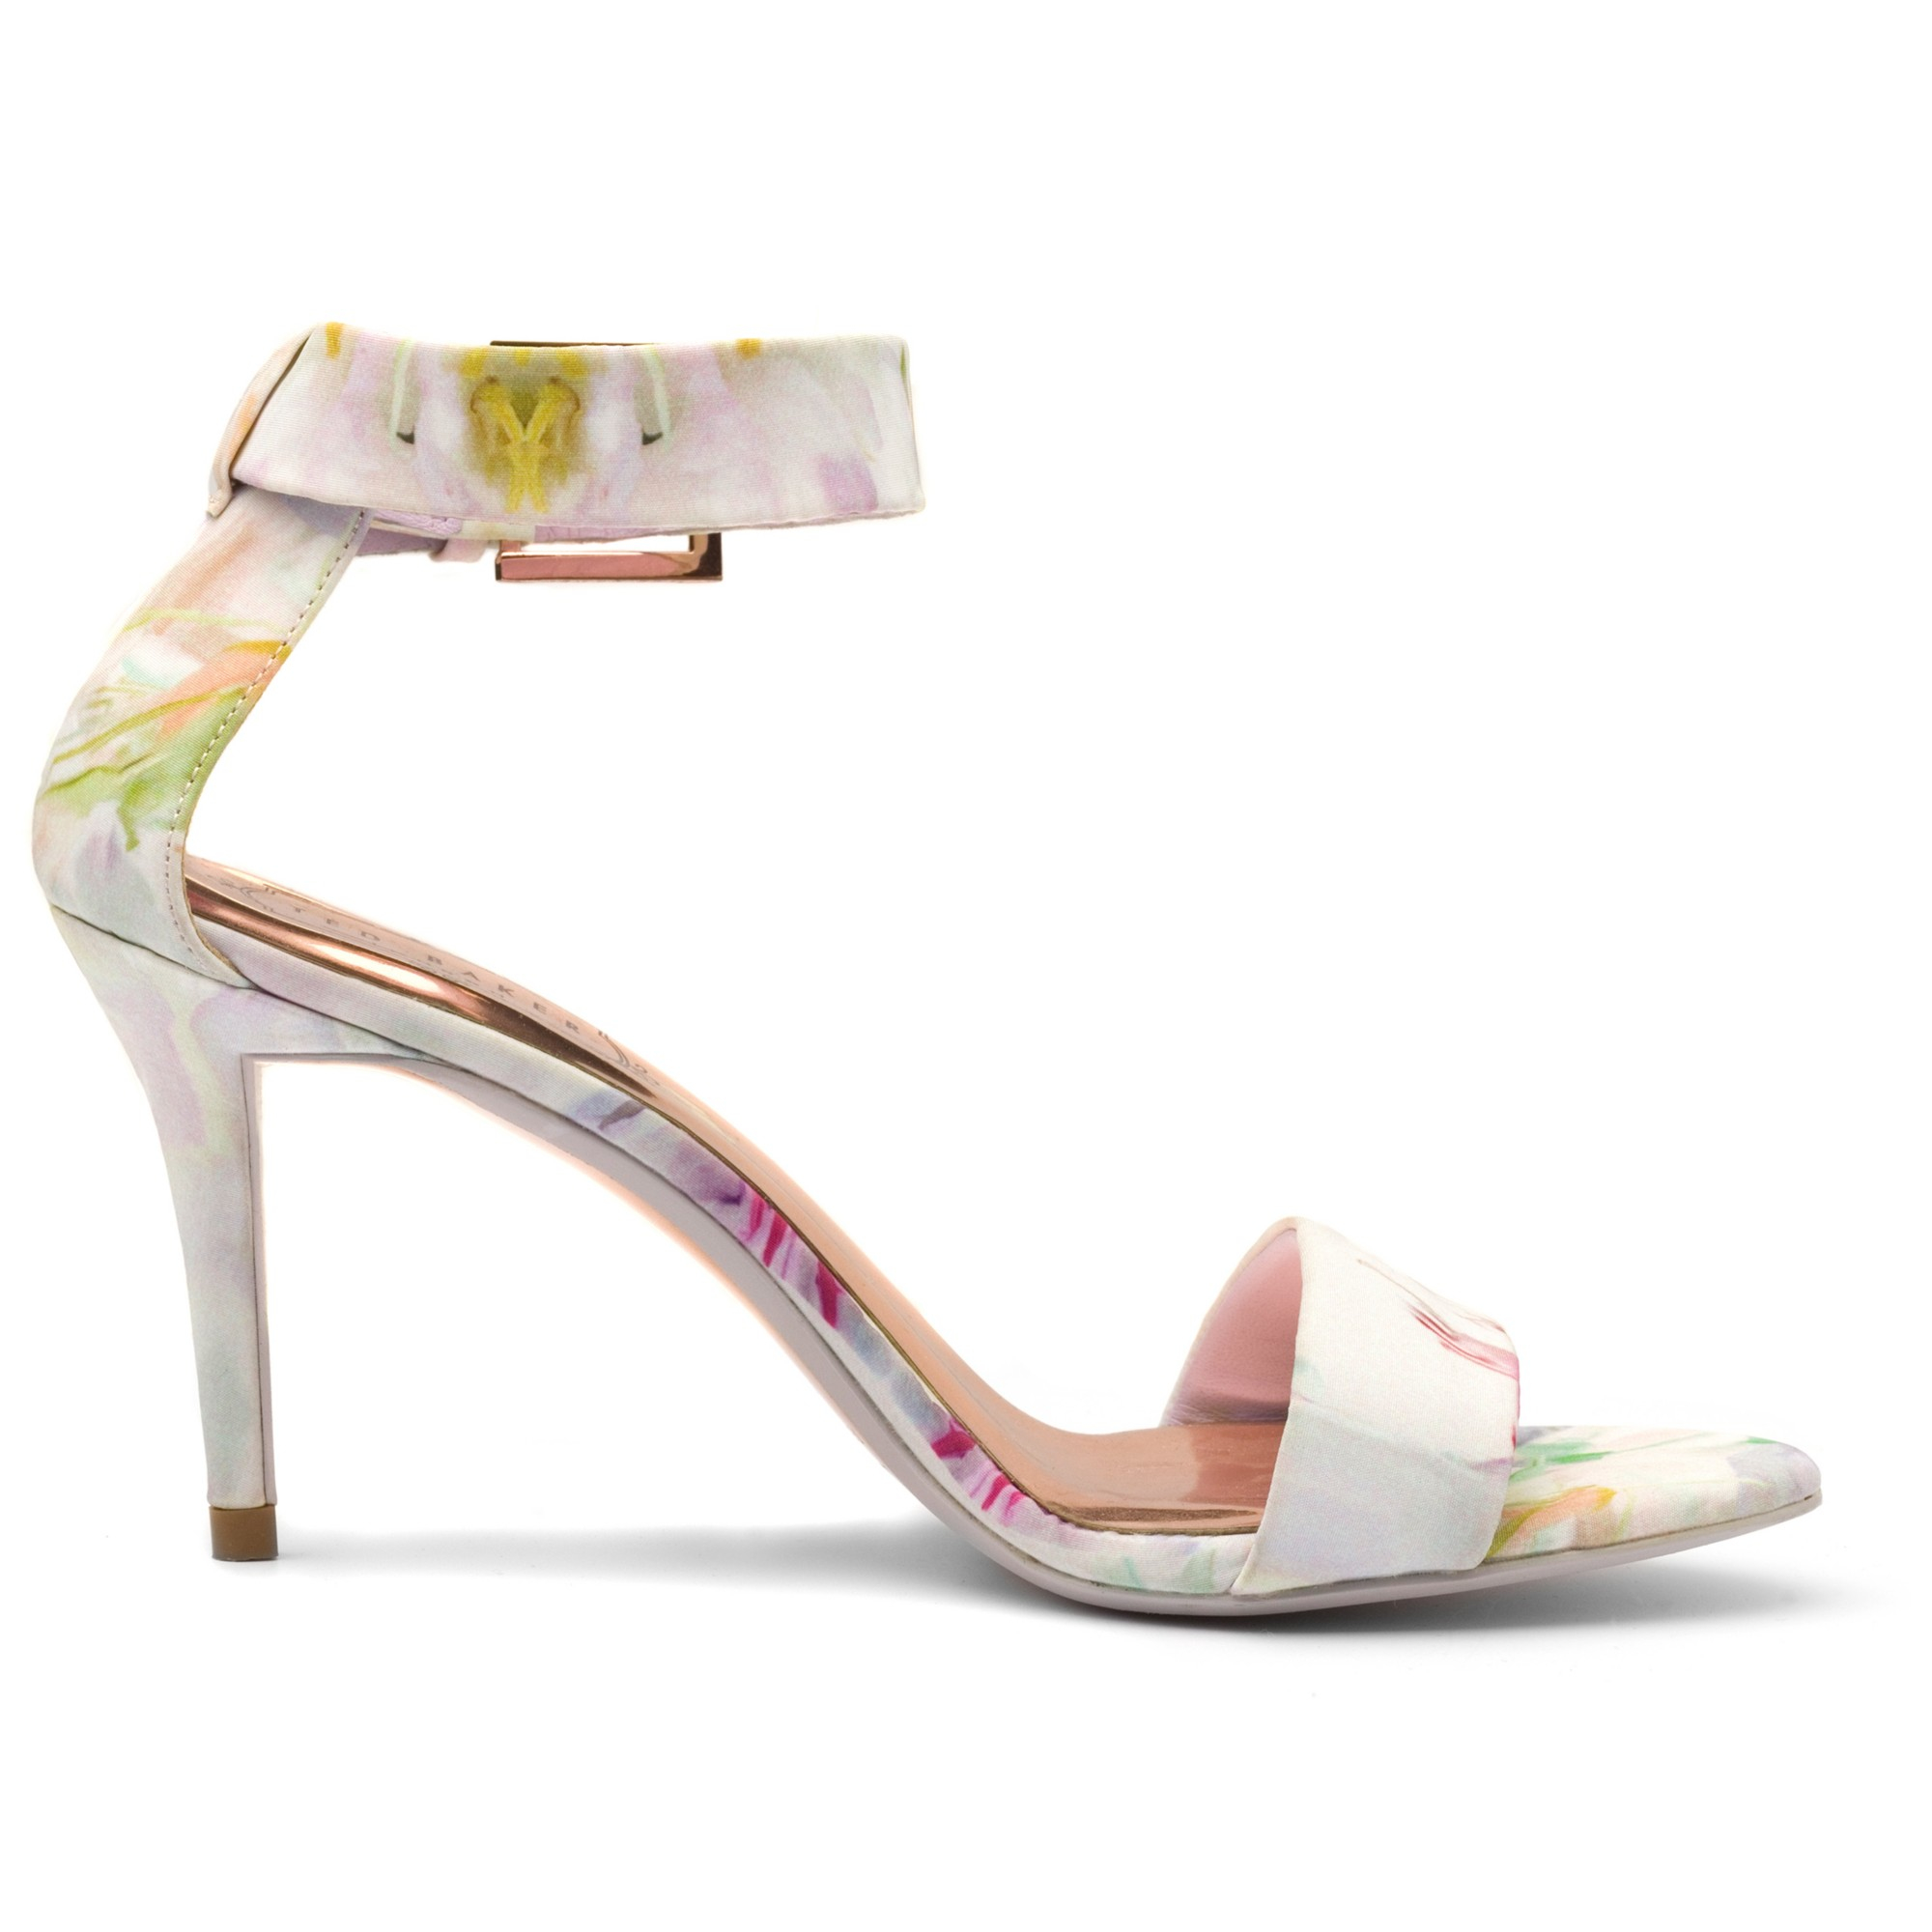 046910e934a Ted Baker Blynne Stiletto Heeled Sandals - Lyst